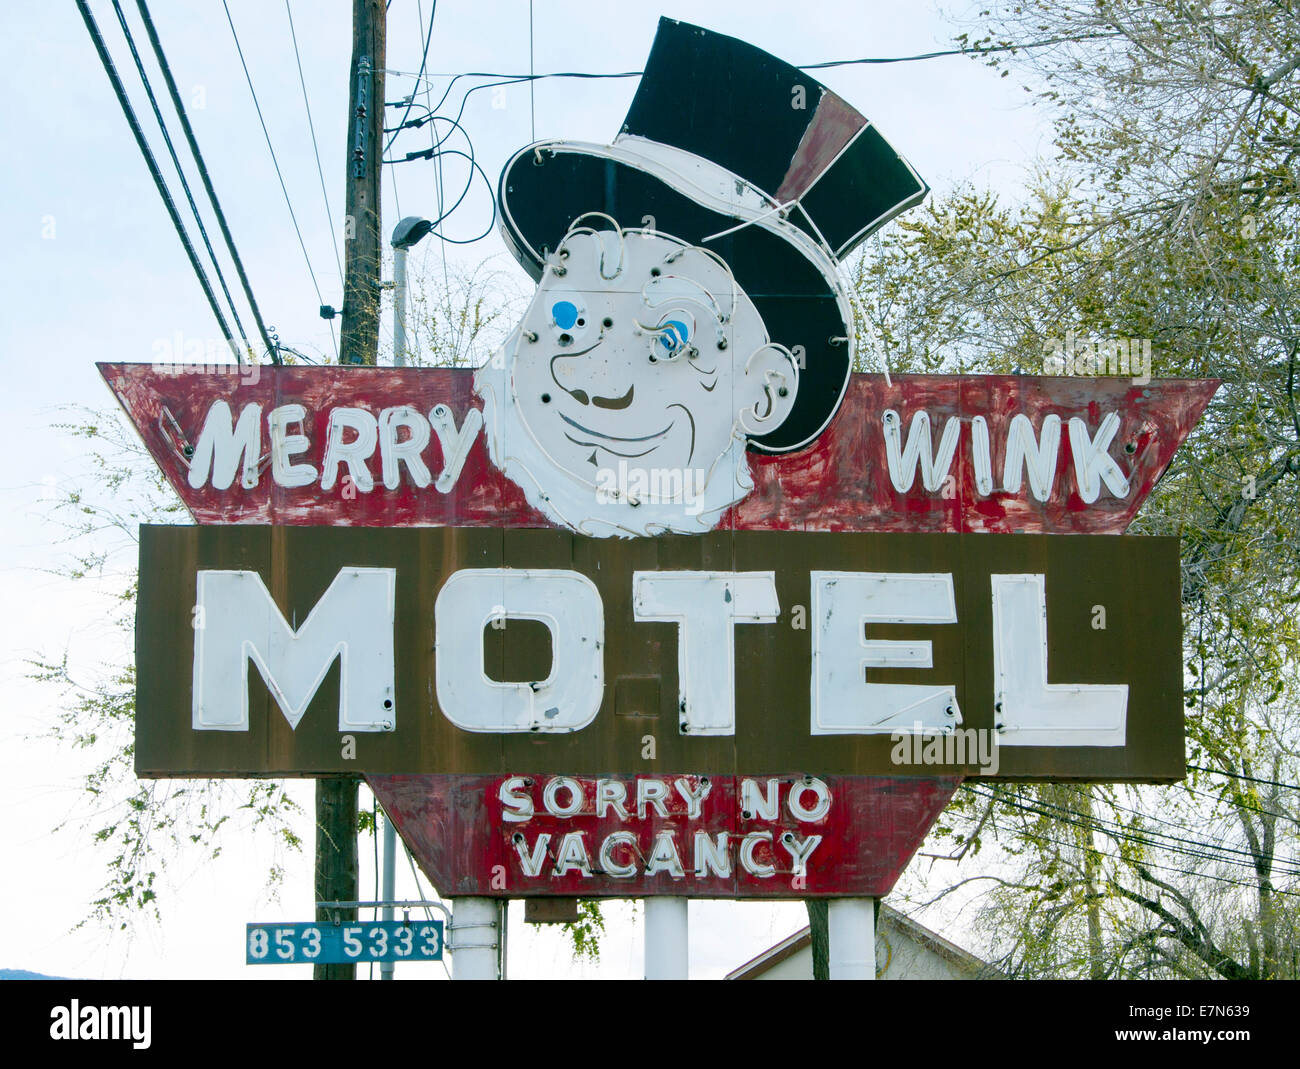 Merry Wink Motel sign in Reno Nevada - Stock Image